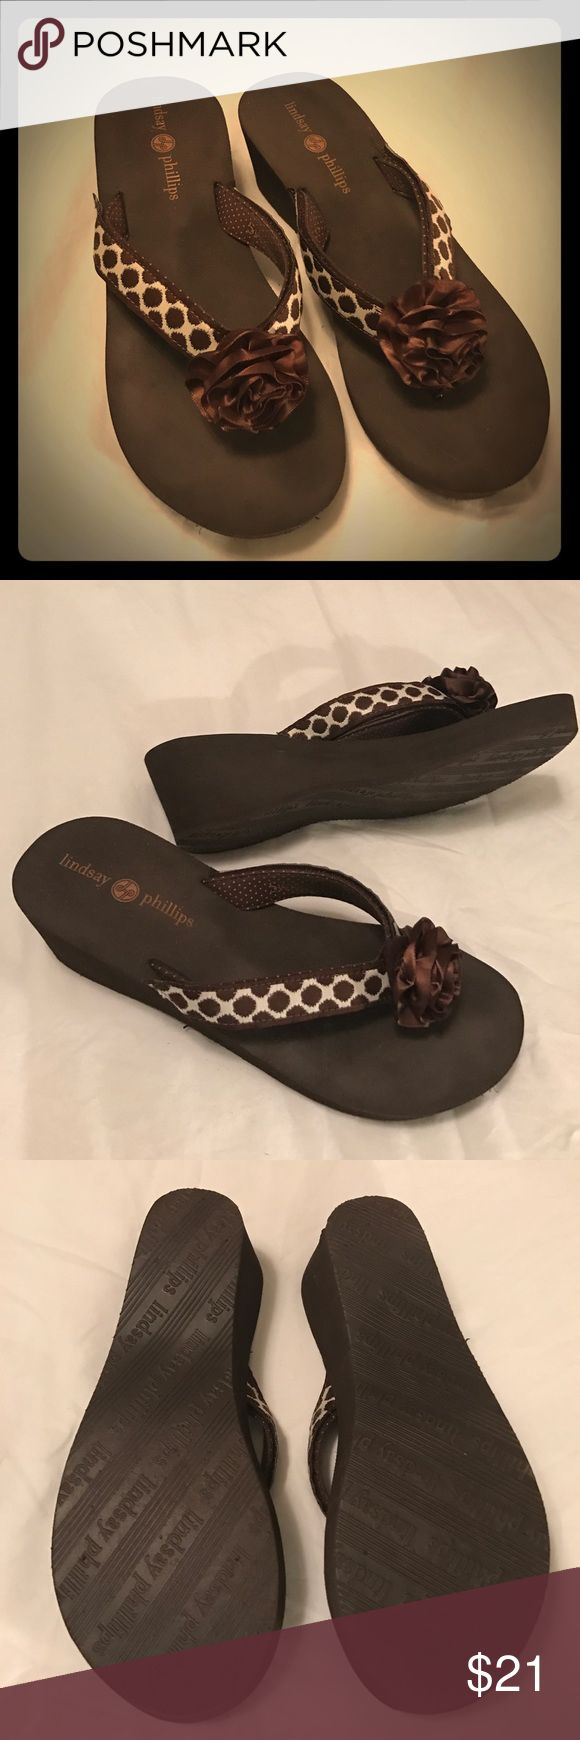 "Lindsay Phillips Brown Flip Flops Brand Lindsay Phillips. Size 10. Like new. Heel height 2.5"". Brown and cream colored. Non-smoking home. Lindsay Phillips Shoes Sandals"